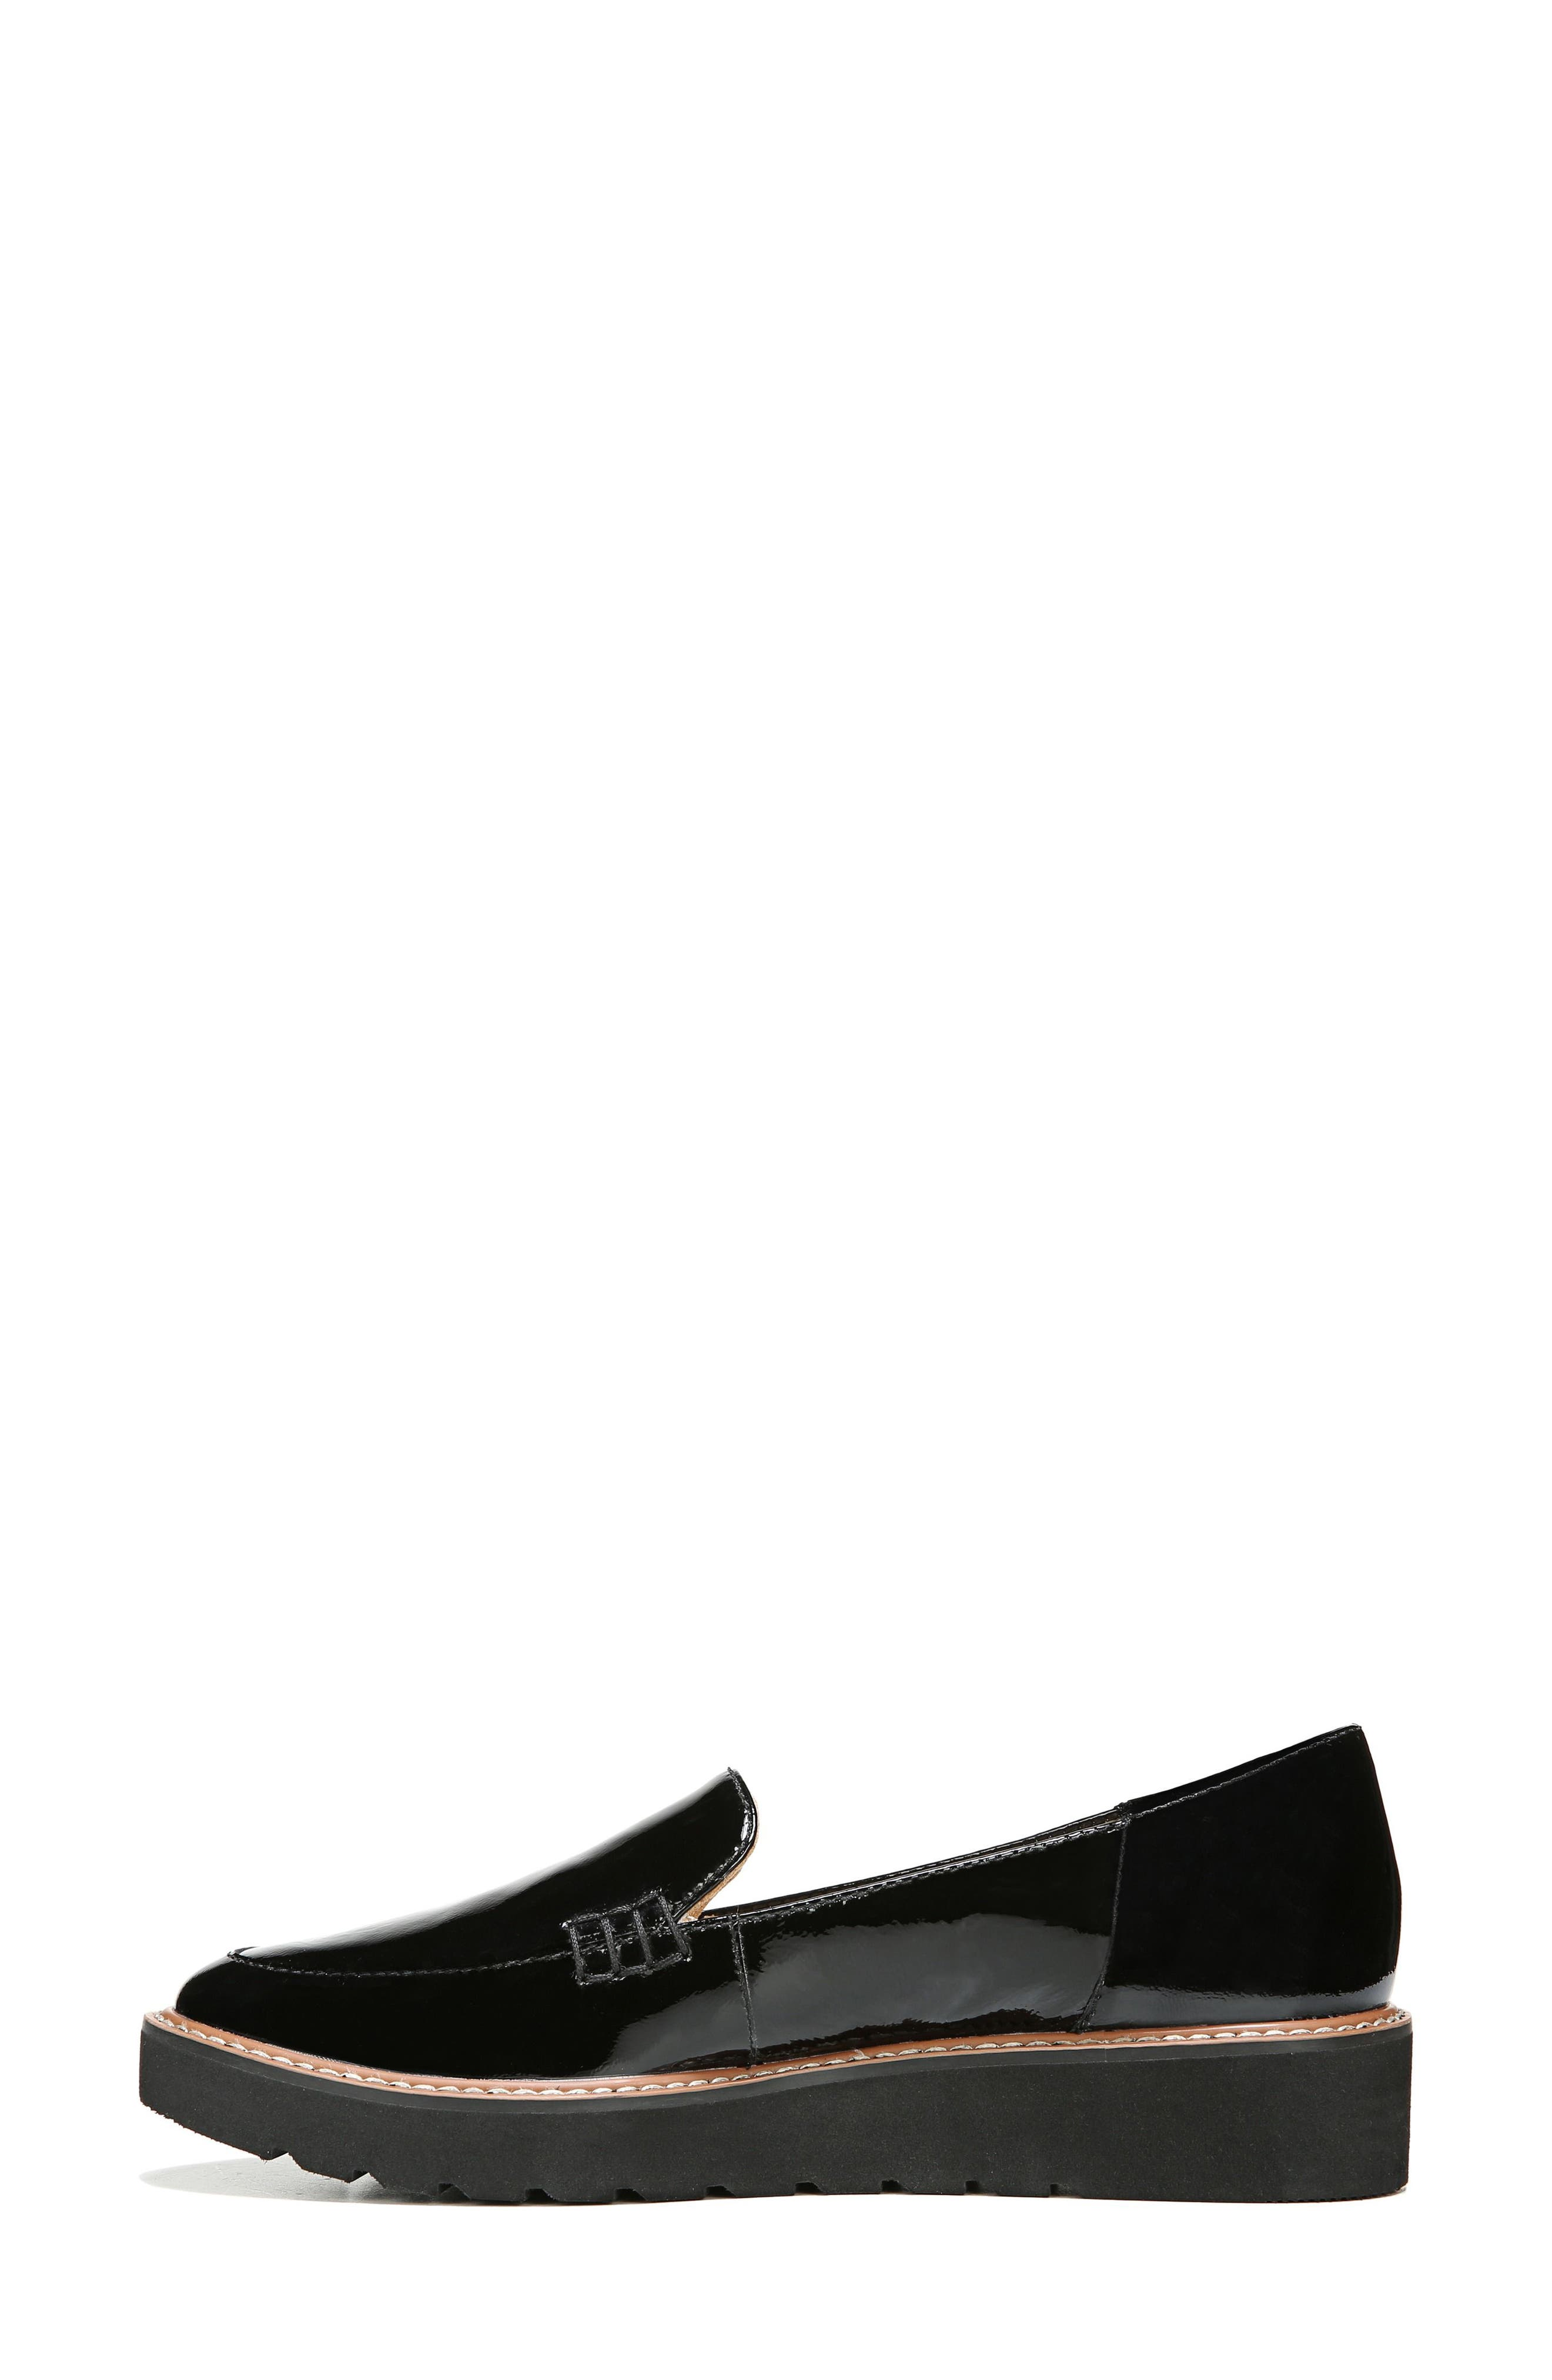 Andie Loafer,                             Alternate thumbnail 3, color,                             BLACK PATENT